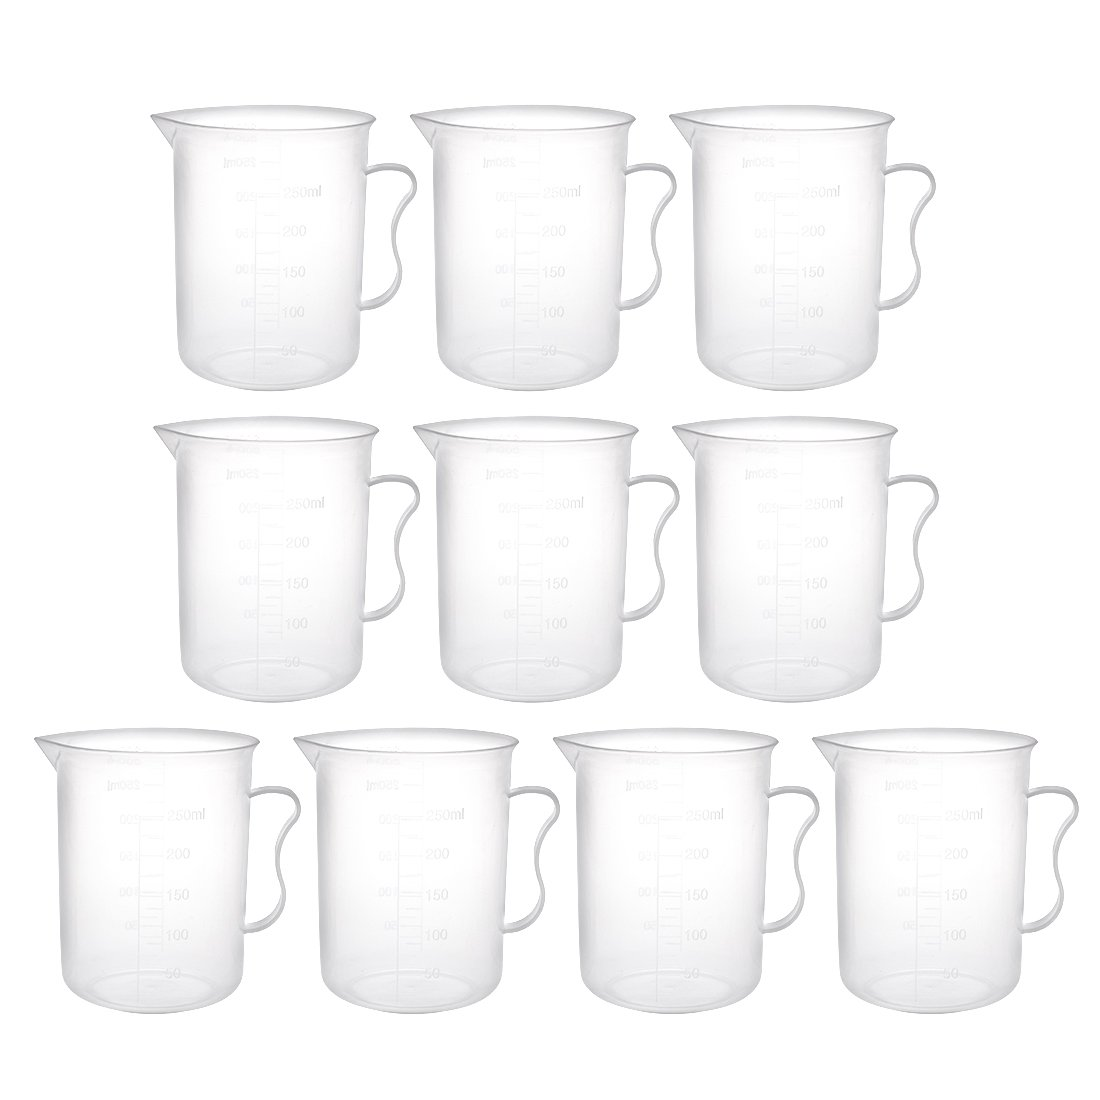 uxcell Laboratory Clear White PP Measuring Cup Handled Cup